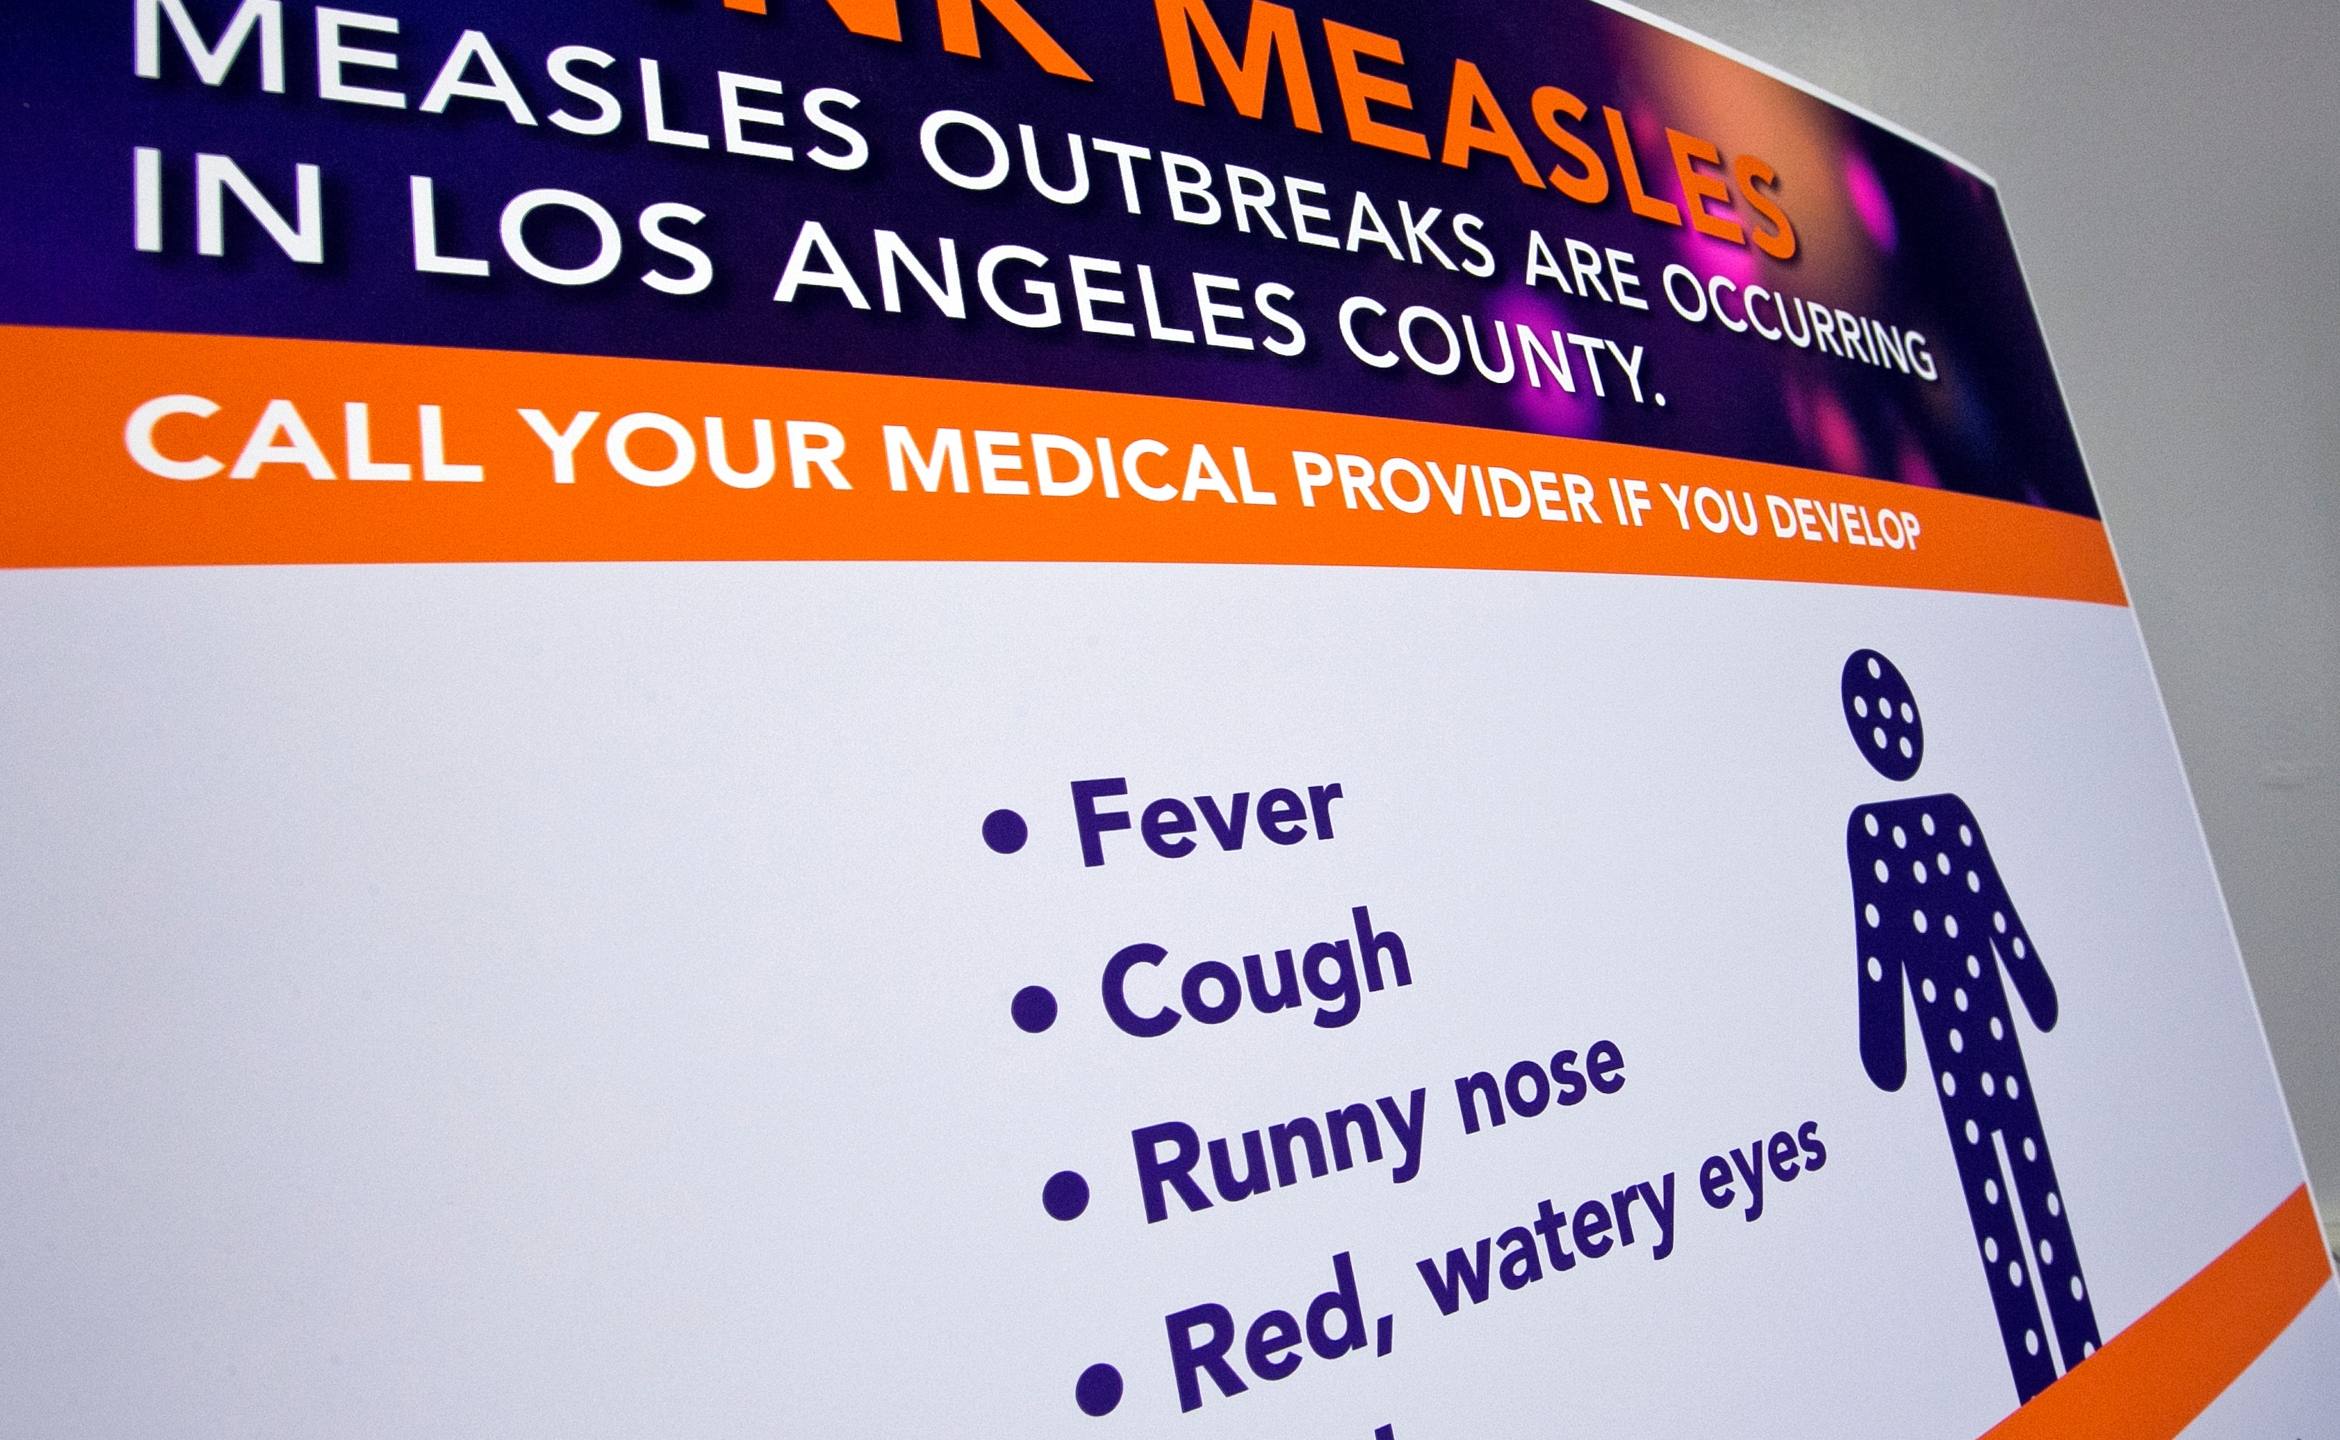 Measles_California_18378-159532.jpg71364885